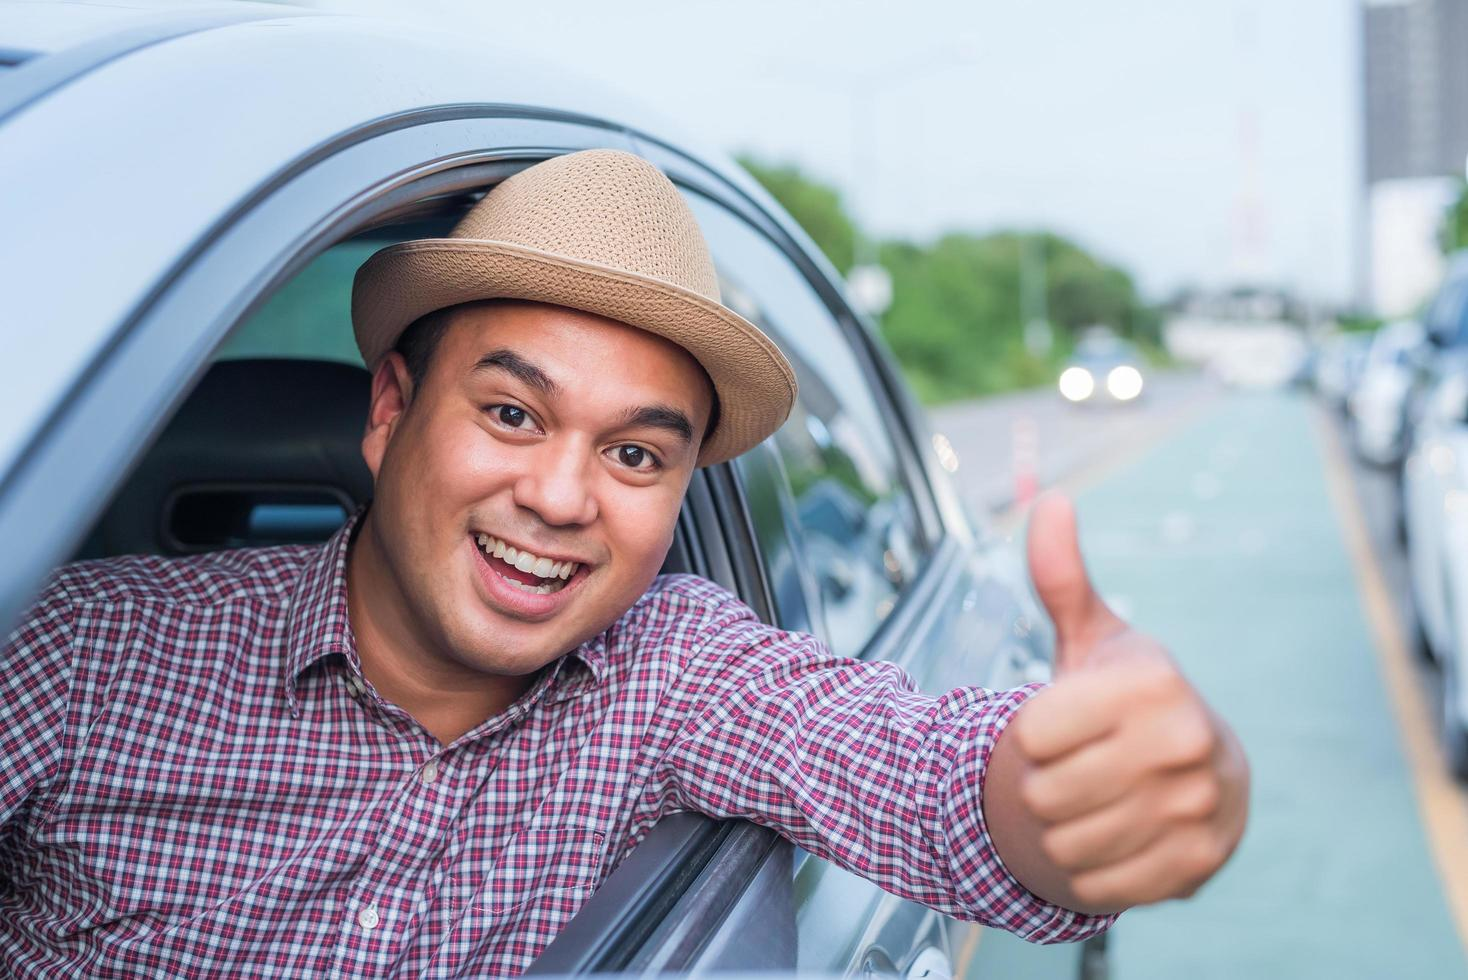 Man giving thumbs up out of car window  photo